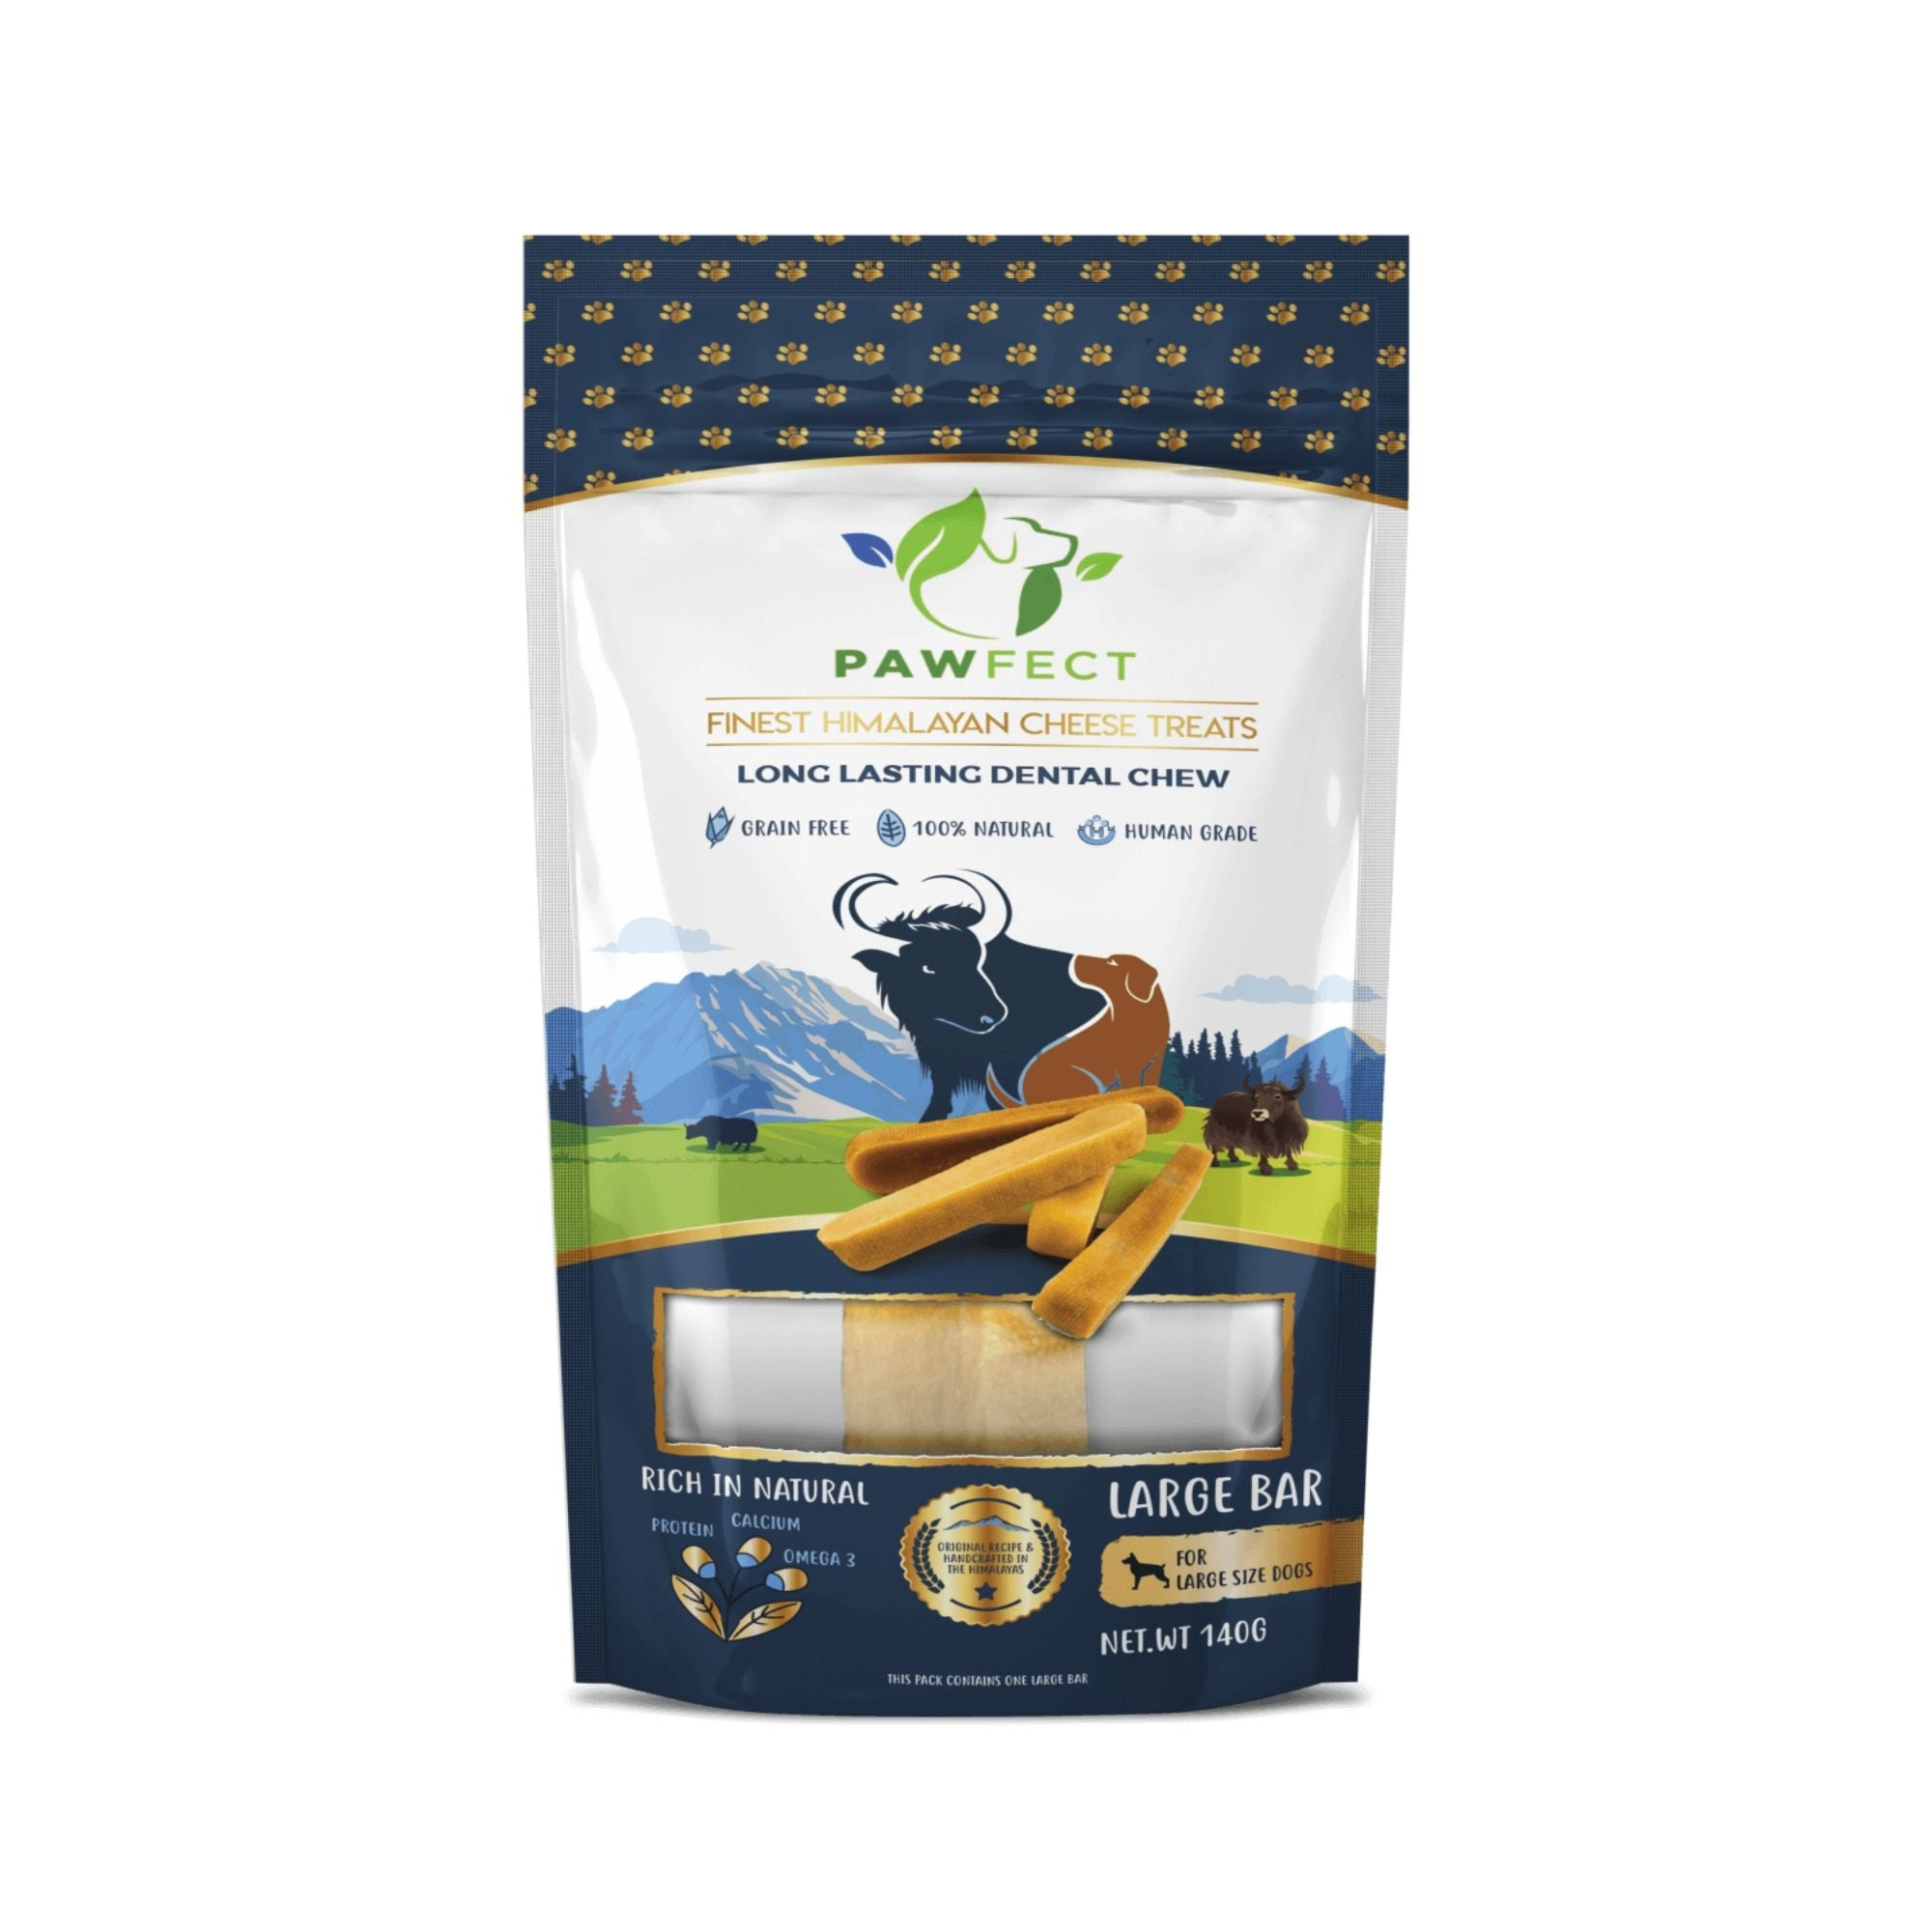 Pawfect HImalayan Cheese Chew for Dogs | Yakers | Barks & Bunnies